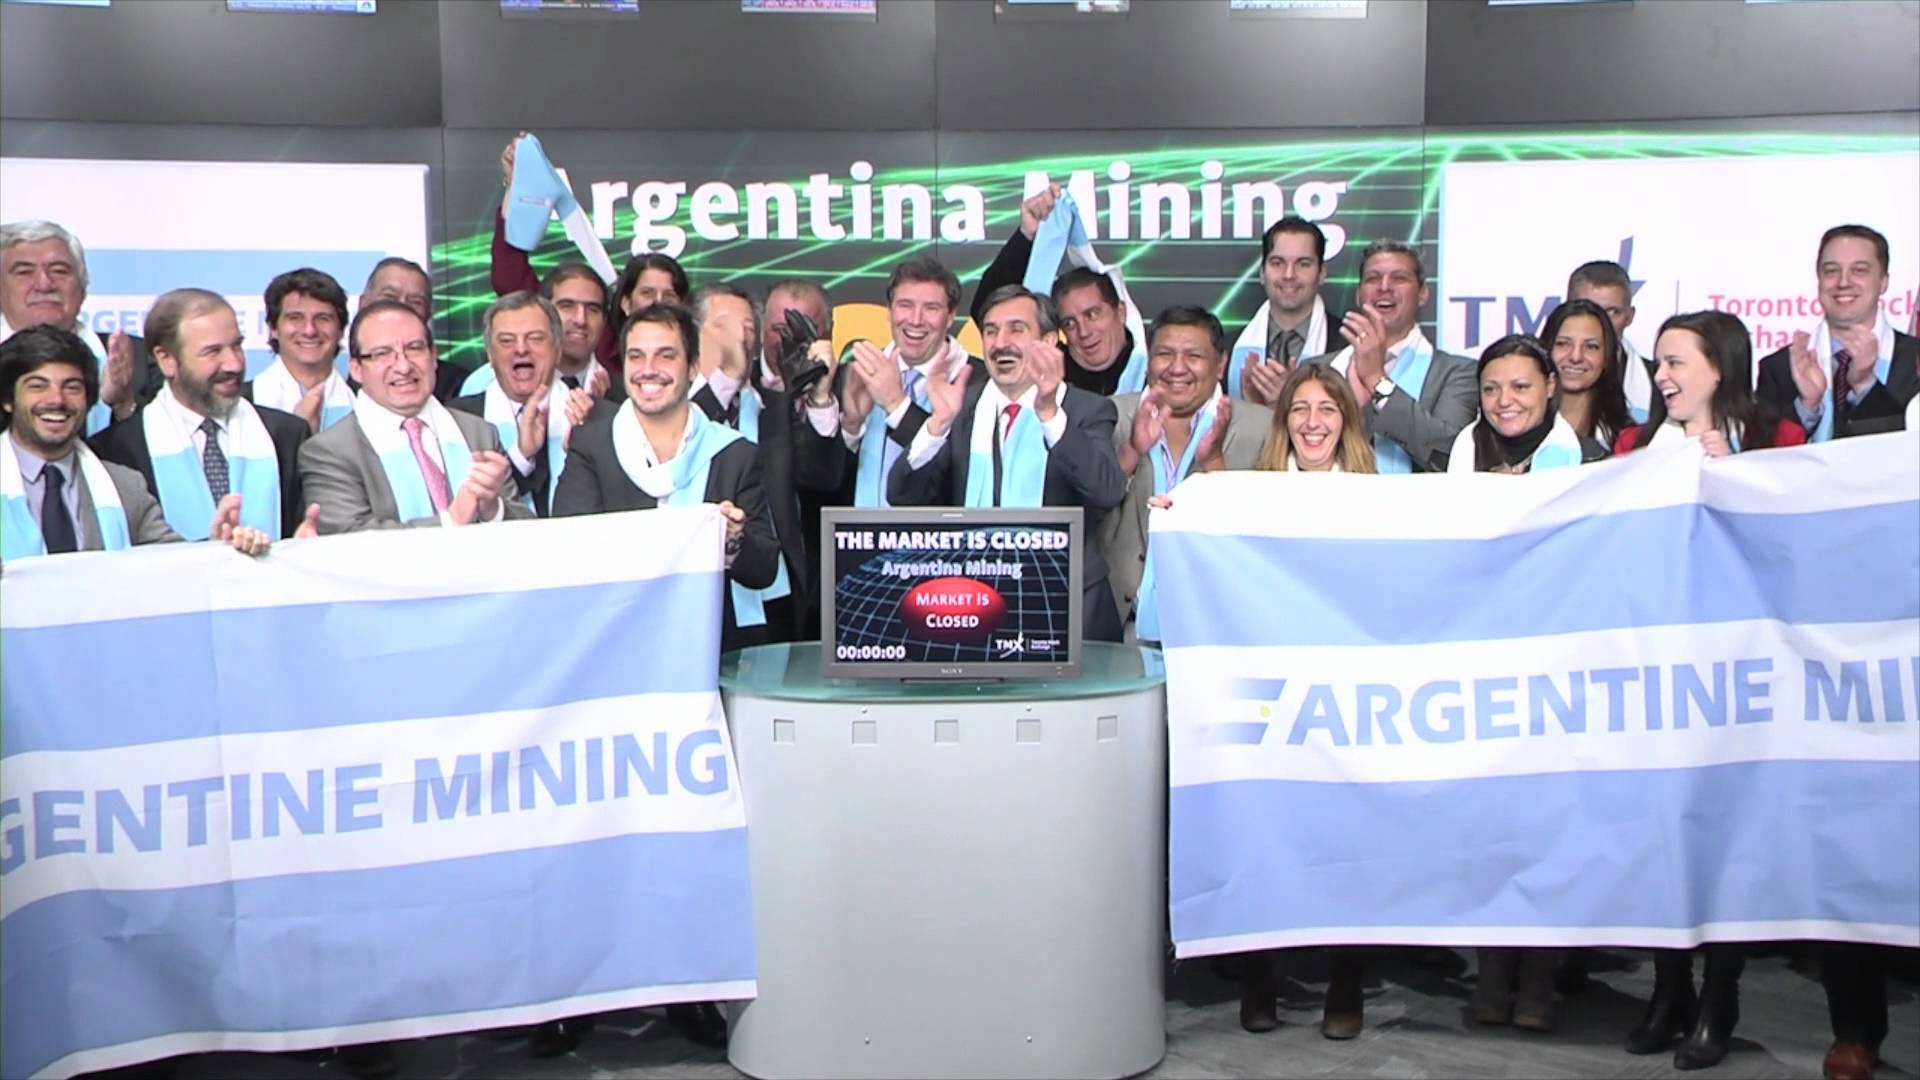 Argentina Mining closes Toronto Stock Exchange, March 4, 2015.